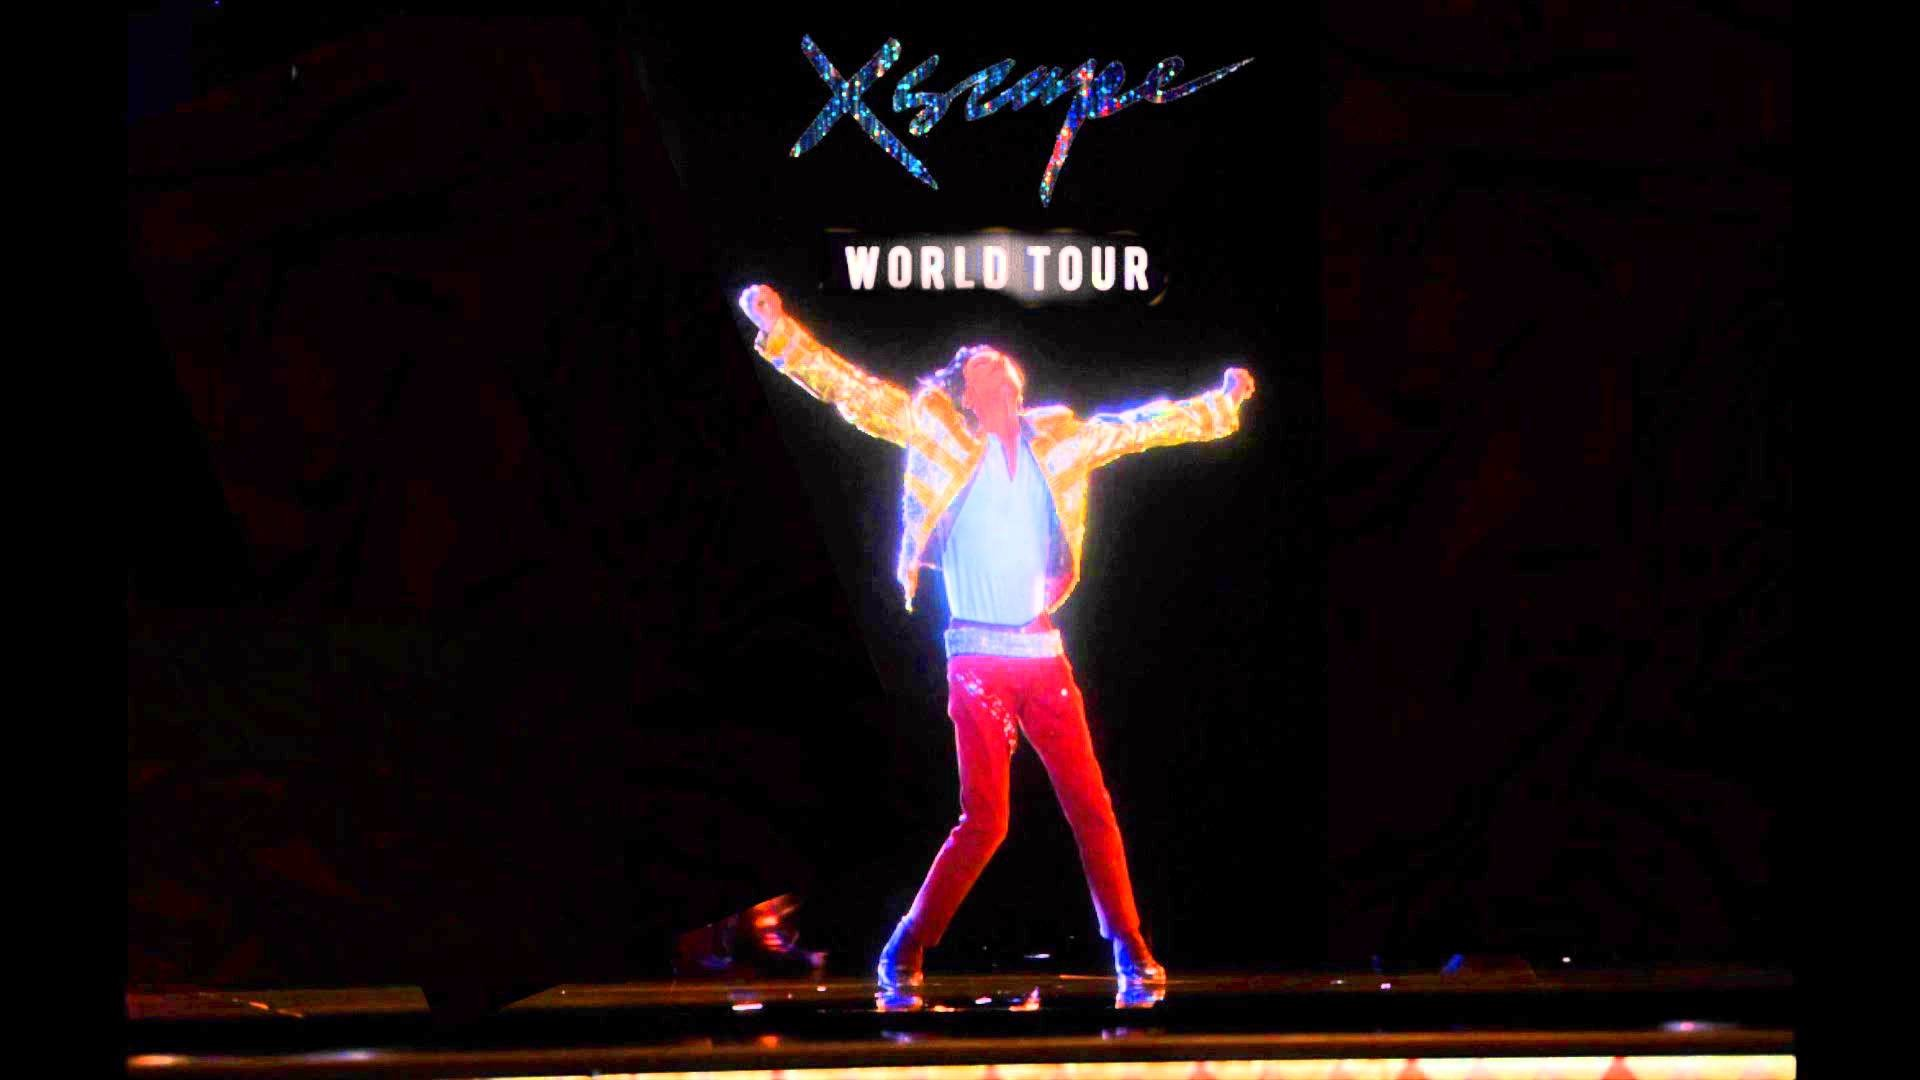 Michael Jackson Dancing Wallpaper Posted By Zoey Tremblay